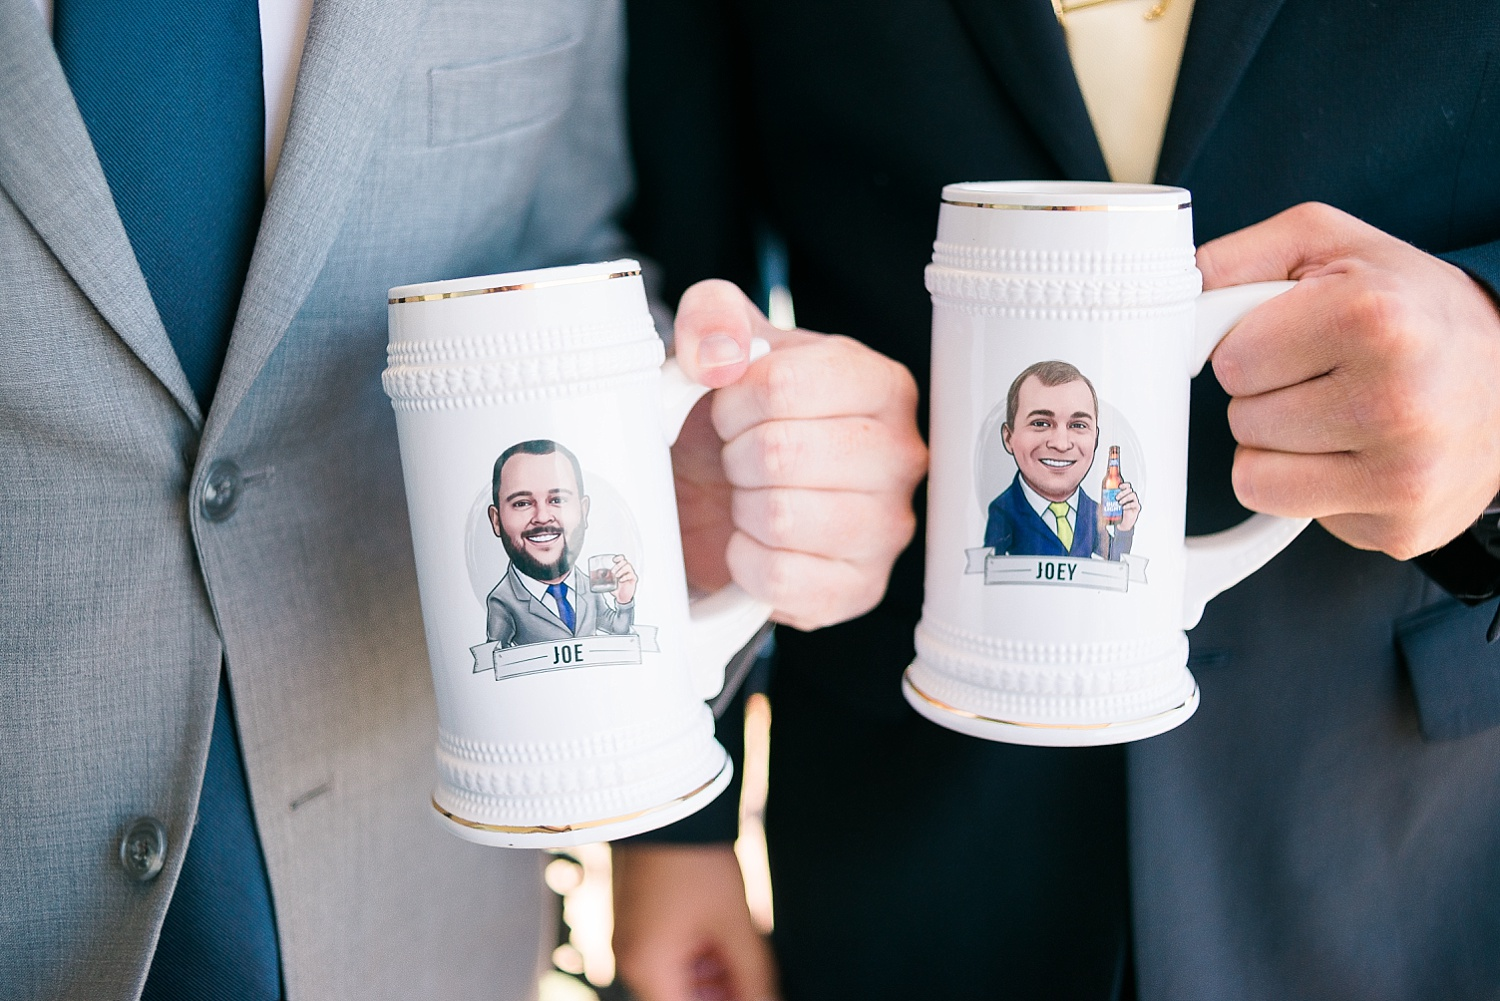 How cool are these groomsmen gifts?